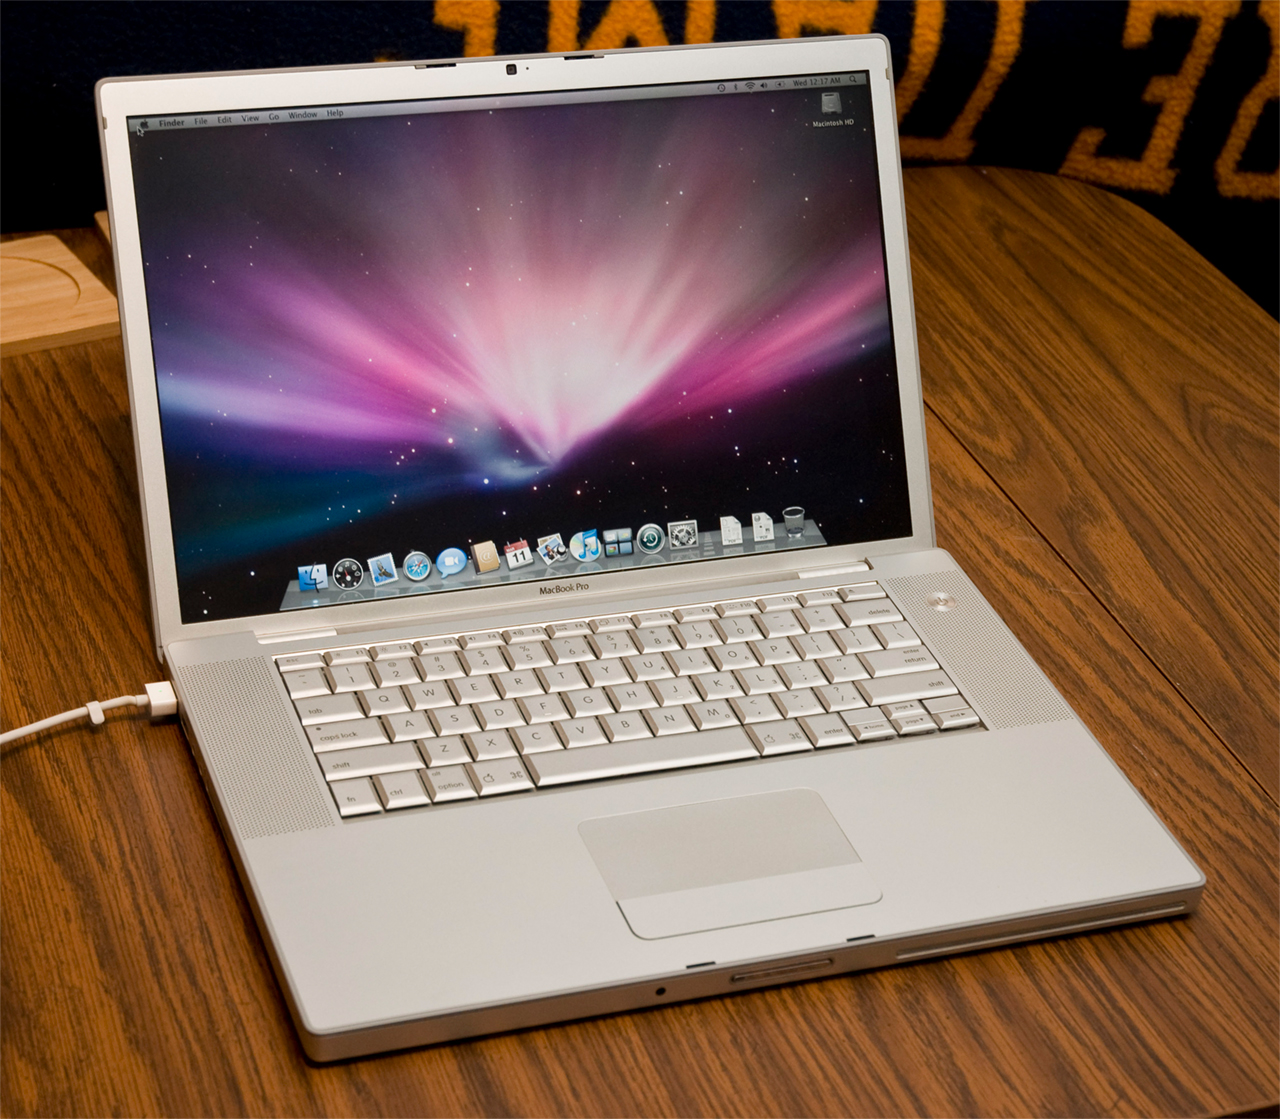 MacBook Pro was 13 years old